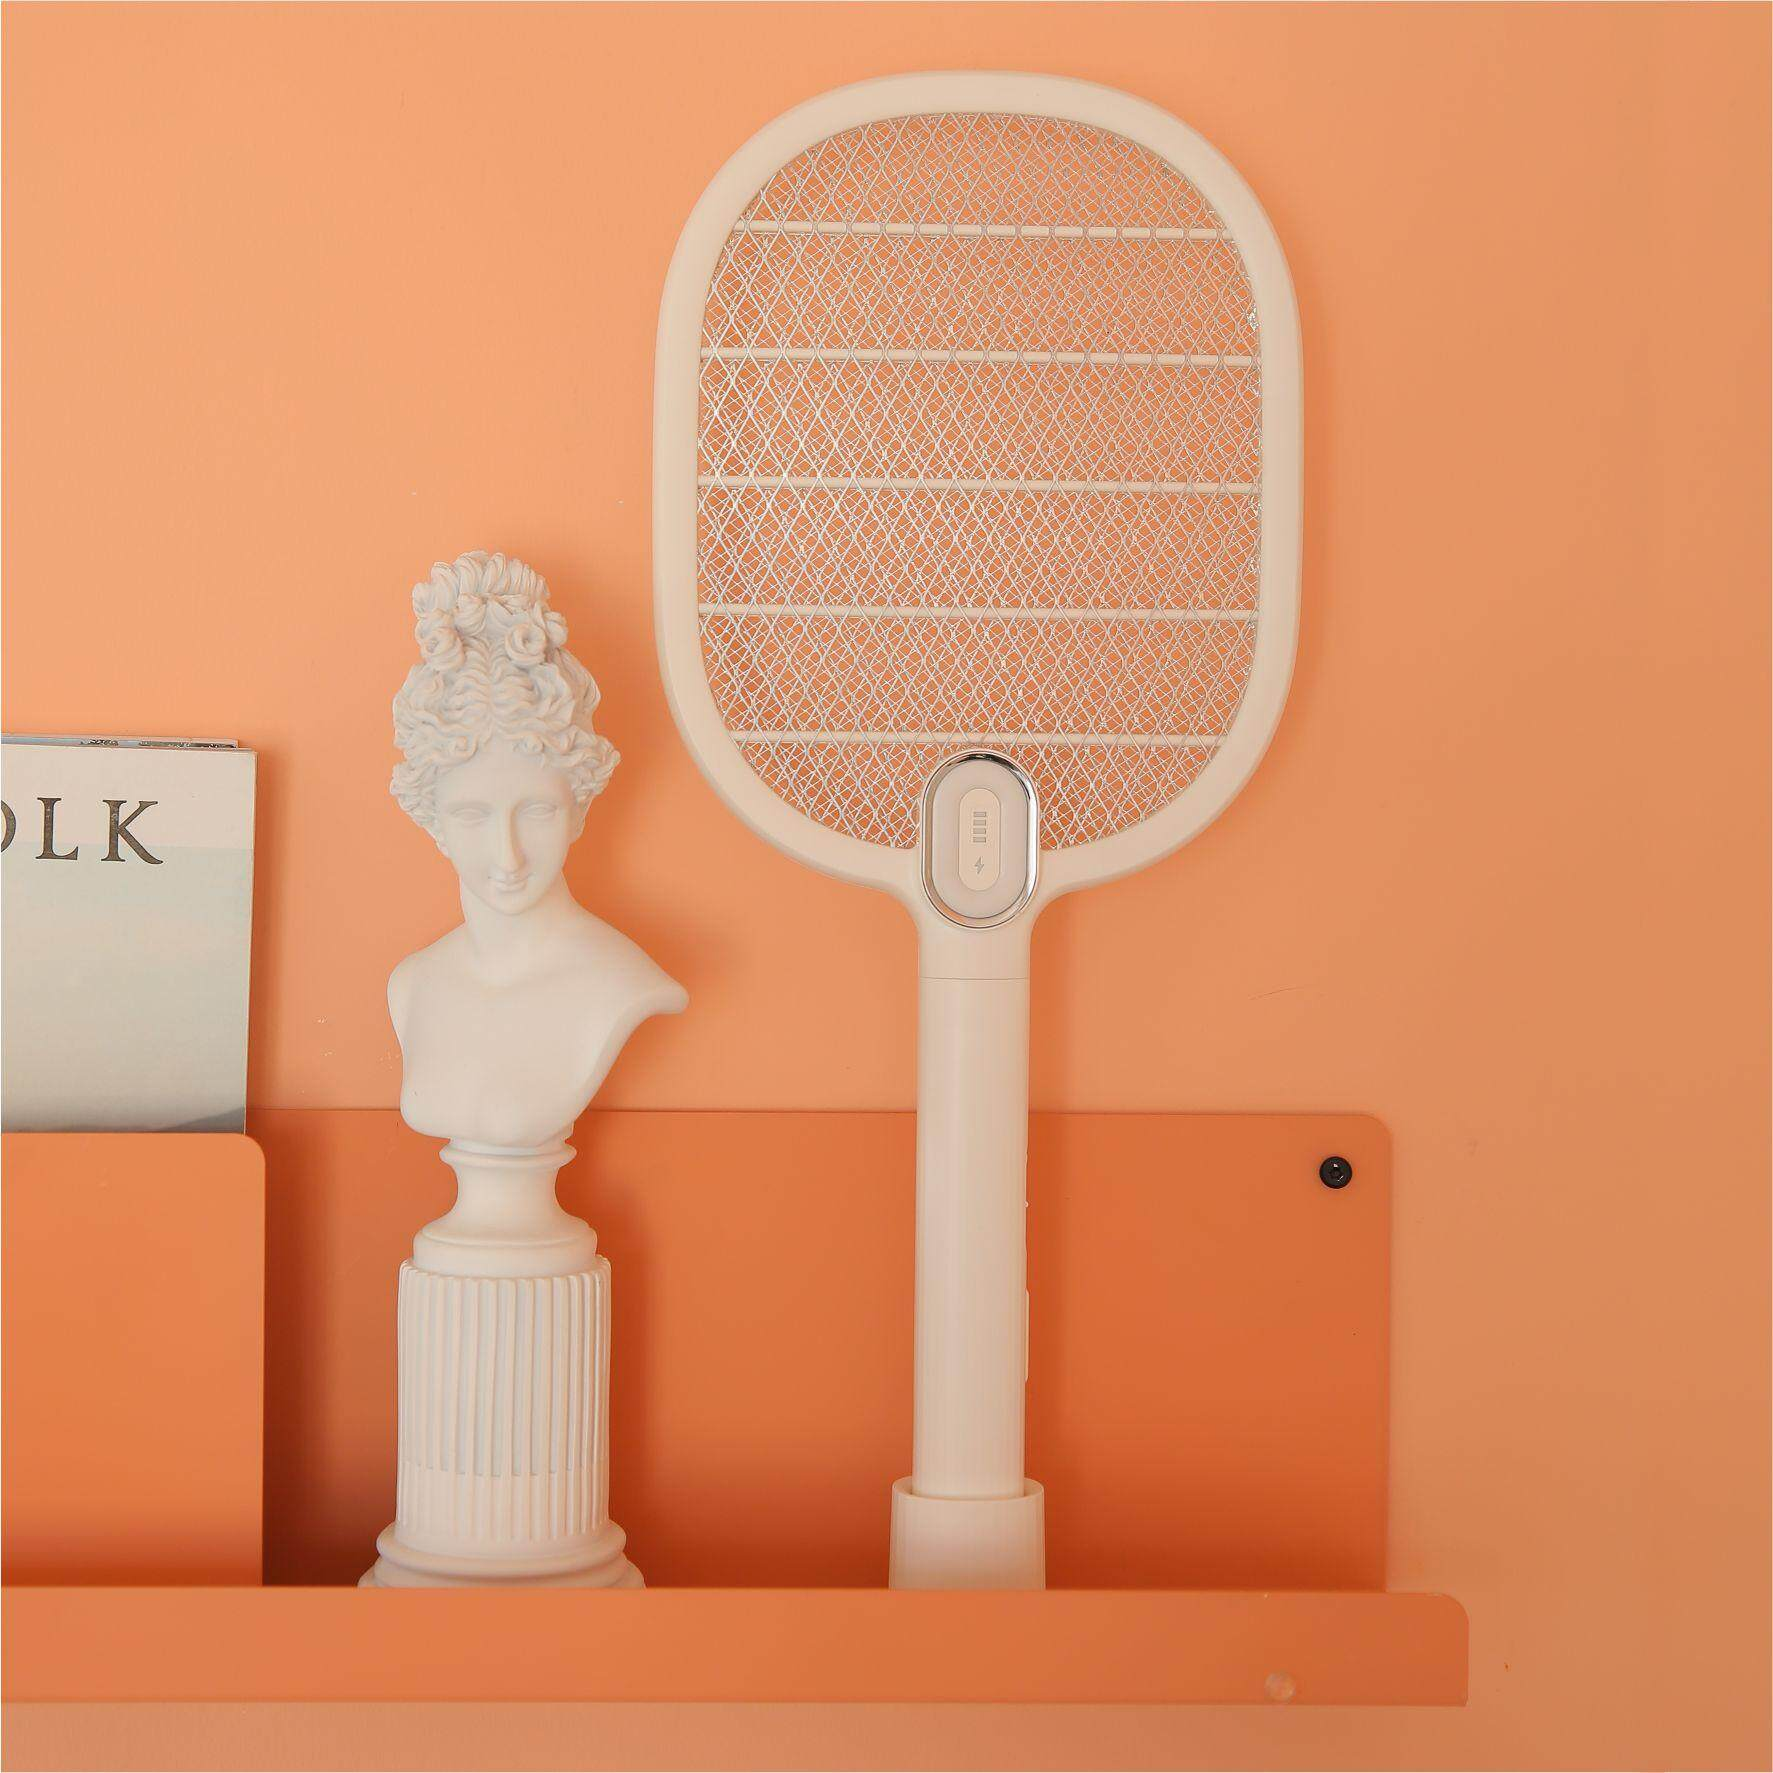 New xiaomi mijia 3 Life Electric Mosquito Swatter Rechargeable LED Electric Insect Bug Fly Mosquito Dispeller Killer Racket 3-Layer Net